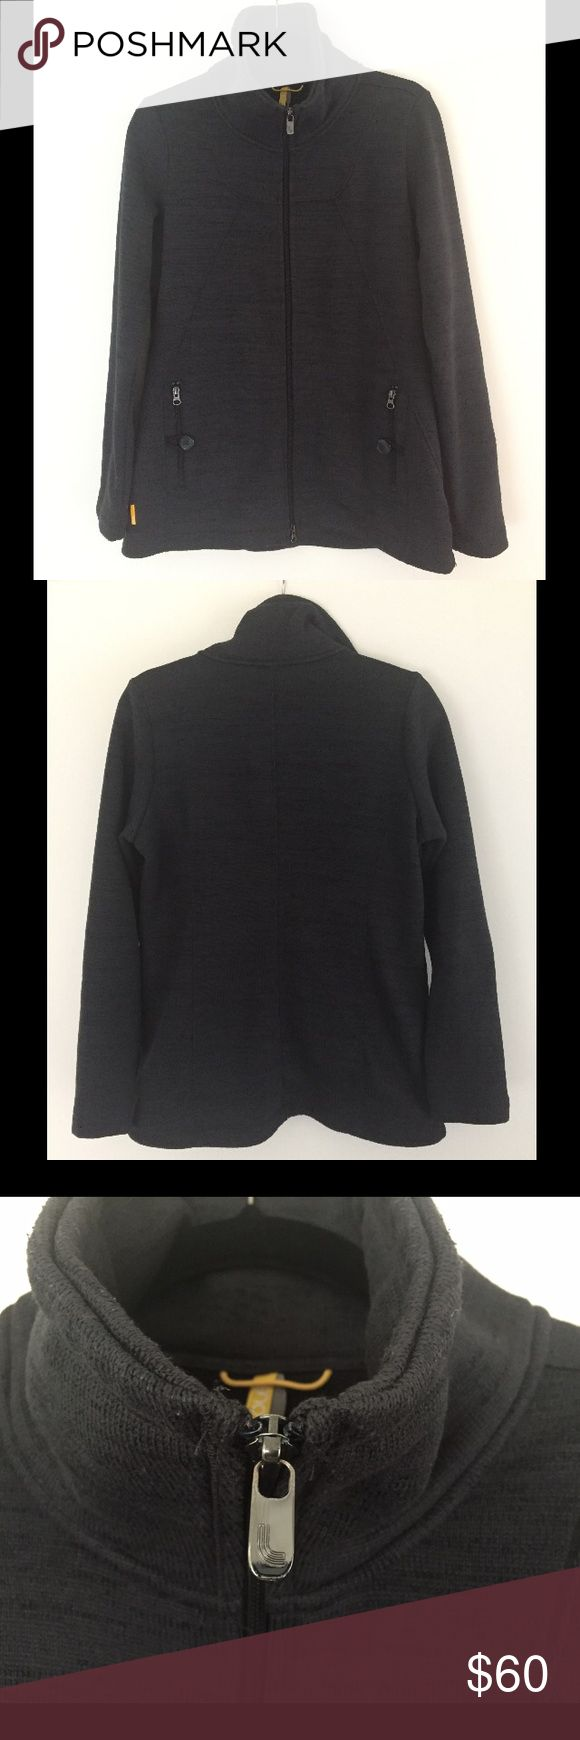 Lolë Knit Zip-up A-line REI Yoga Coat Jacket So warm and soft! Beautiful charcoal color, marled knit with hints of black. Fitted bodice with a tall collar and overall really nice styling. Light pilling that could easily be removed. Worn twice. Lole Jackets & Coats